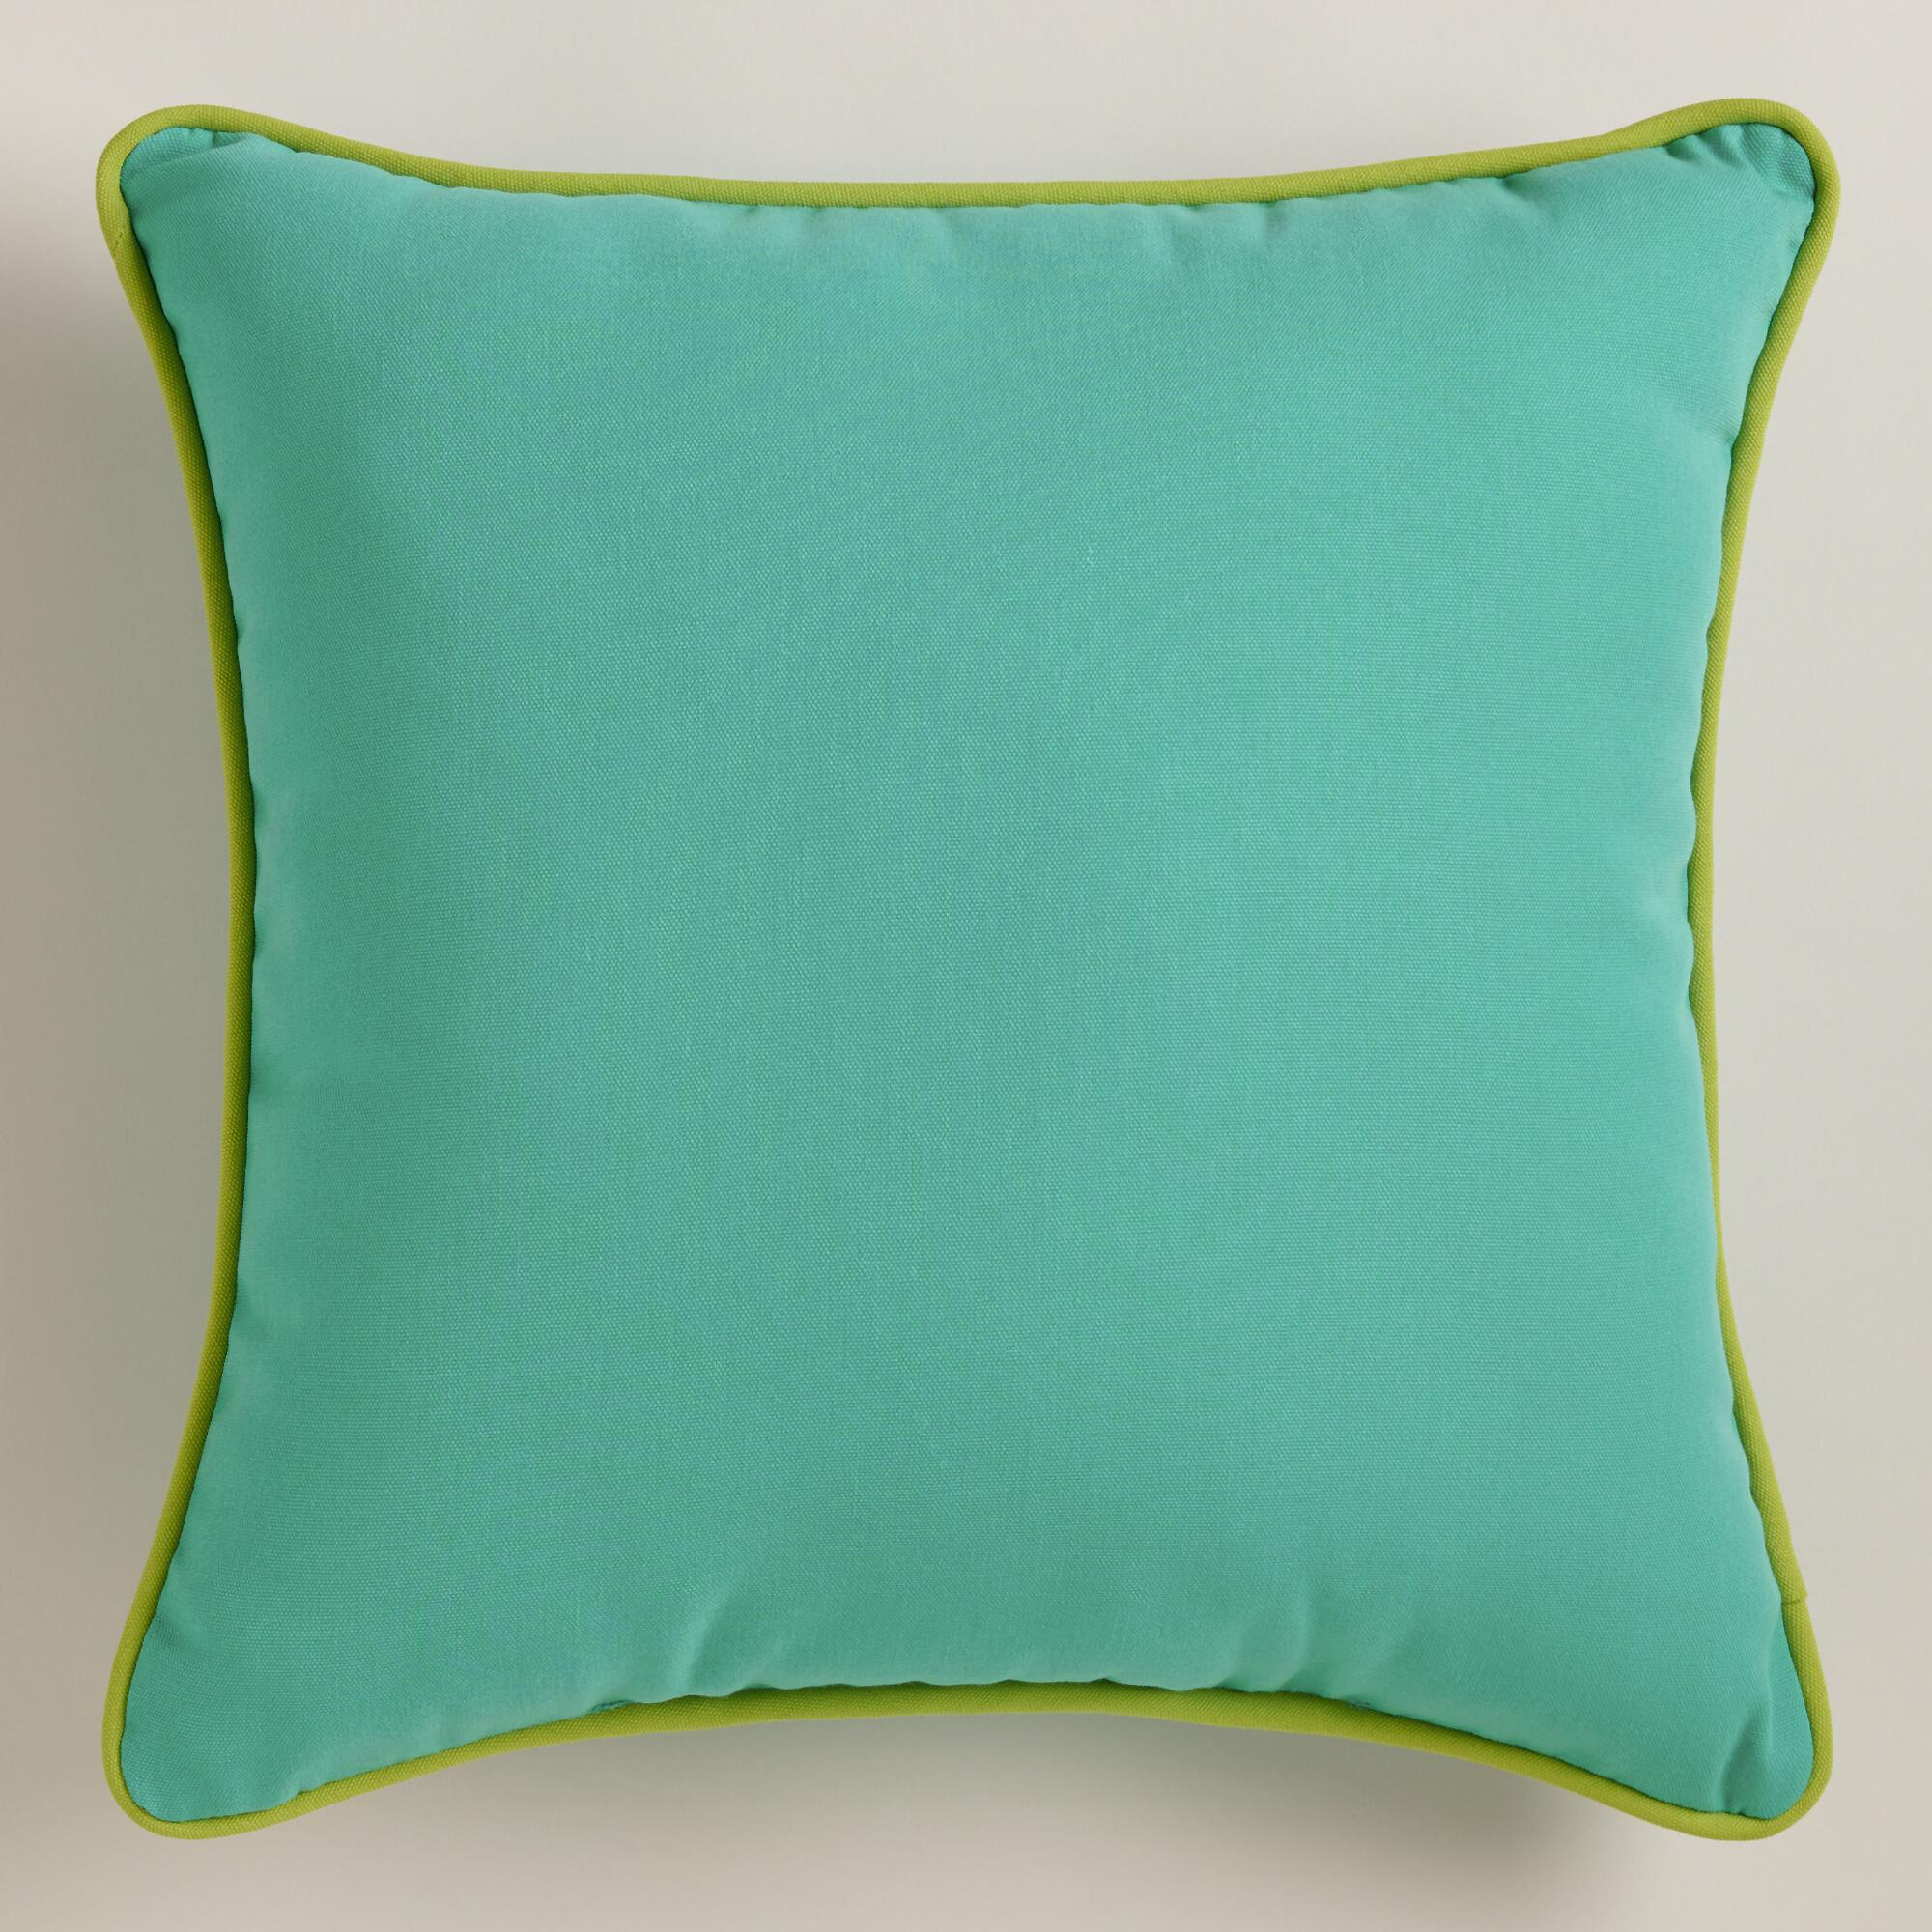 How To Make A Decorative Pillow With Piping : Aqua Outdoor Throw Pillow with Piping World Market